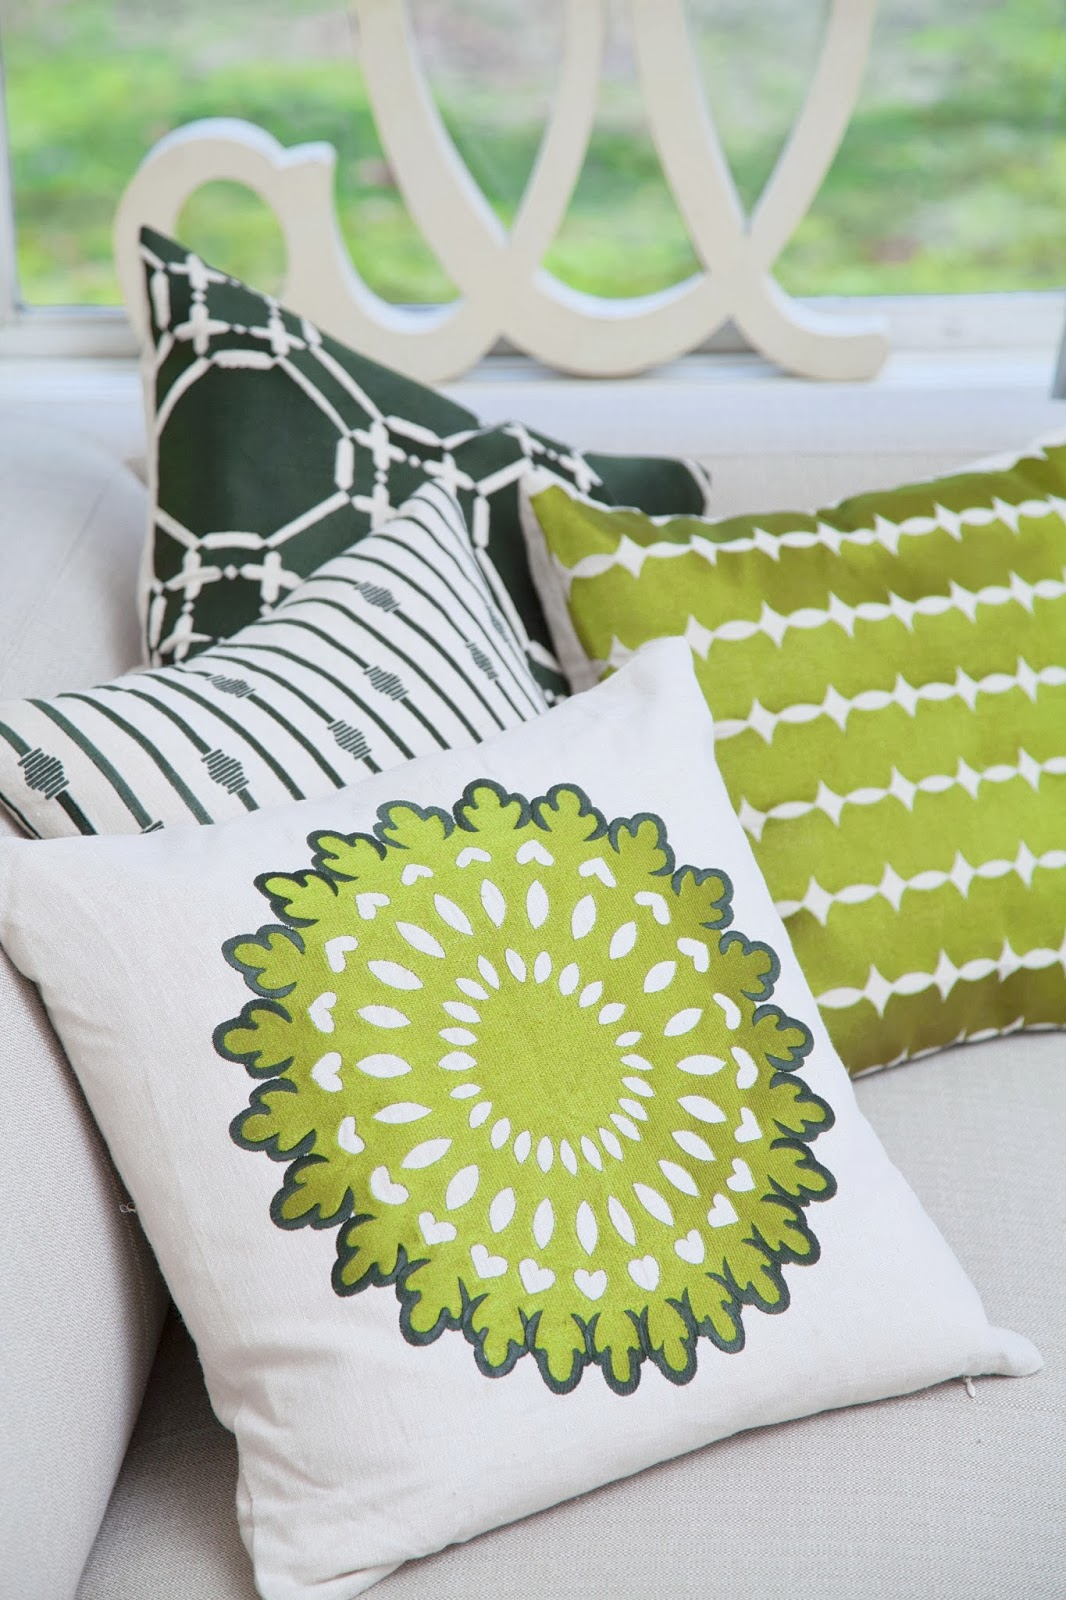 COCOCOZY 2014 Embroidered Pillow Collection in shades of green